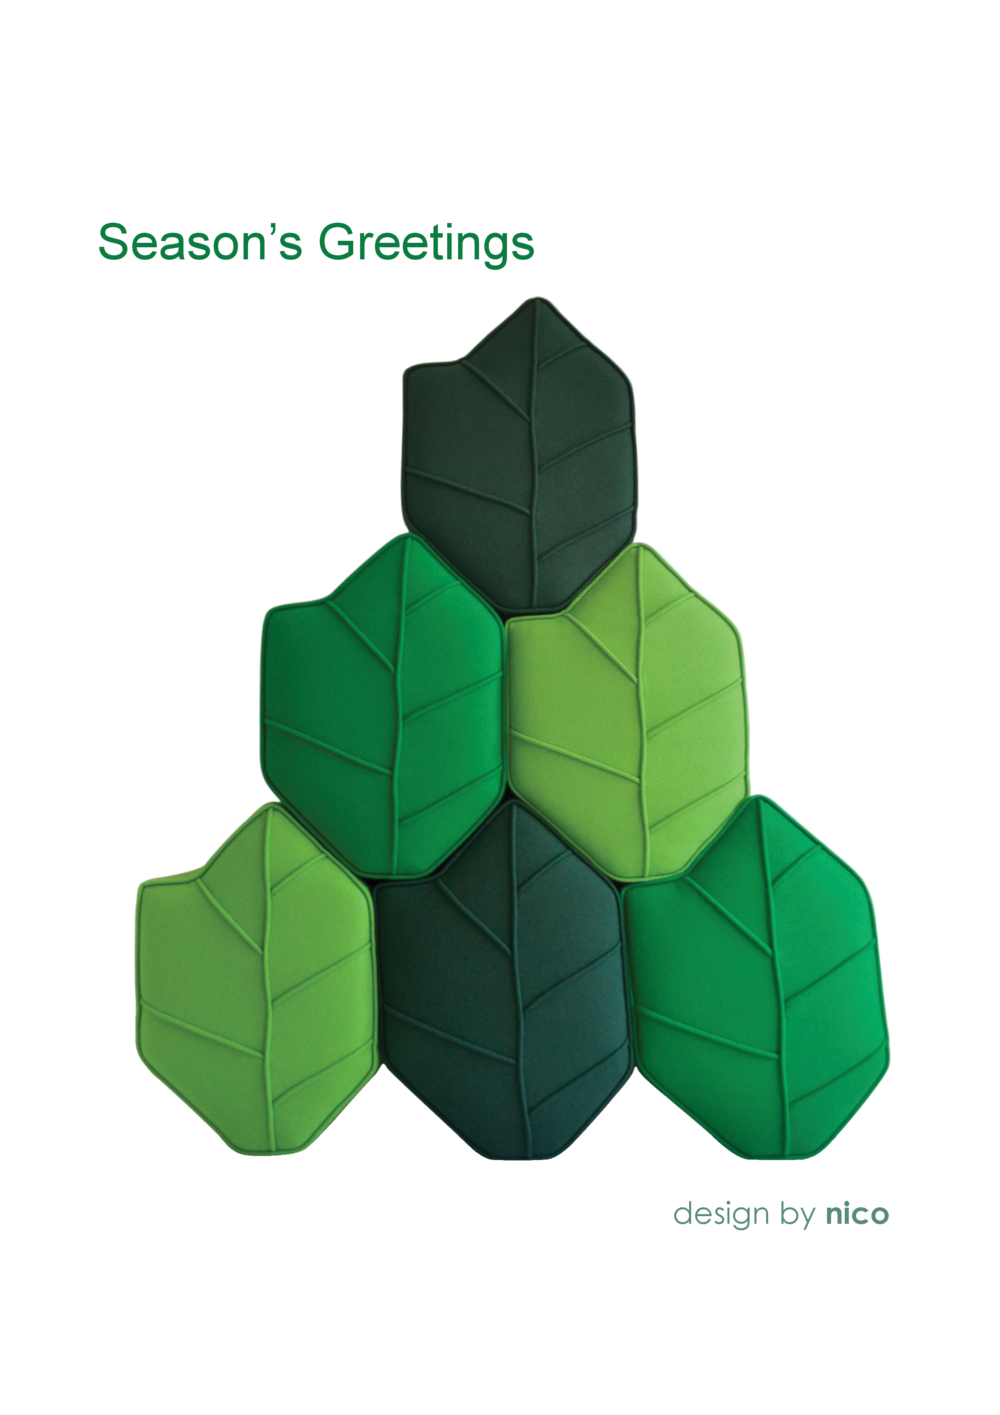 christmascard_leafseats2017-2018.png